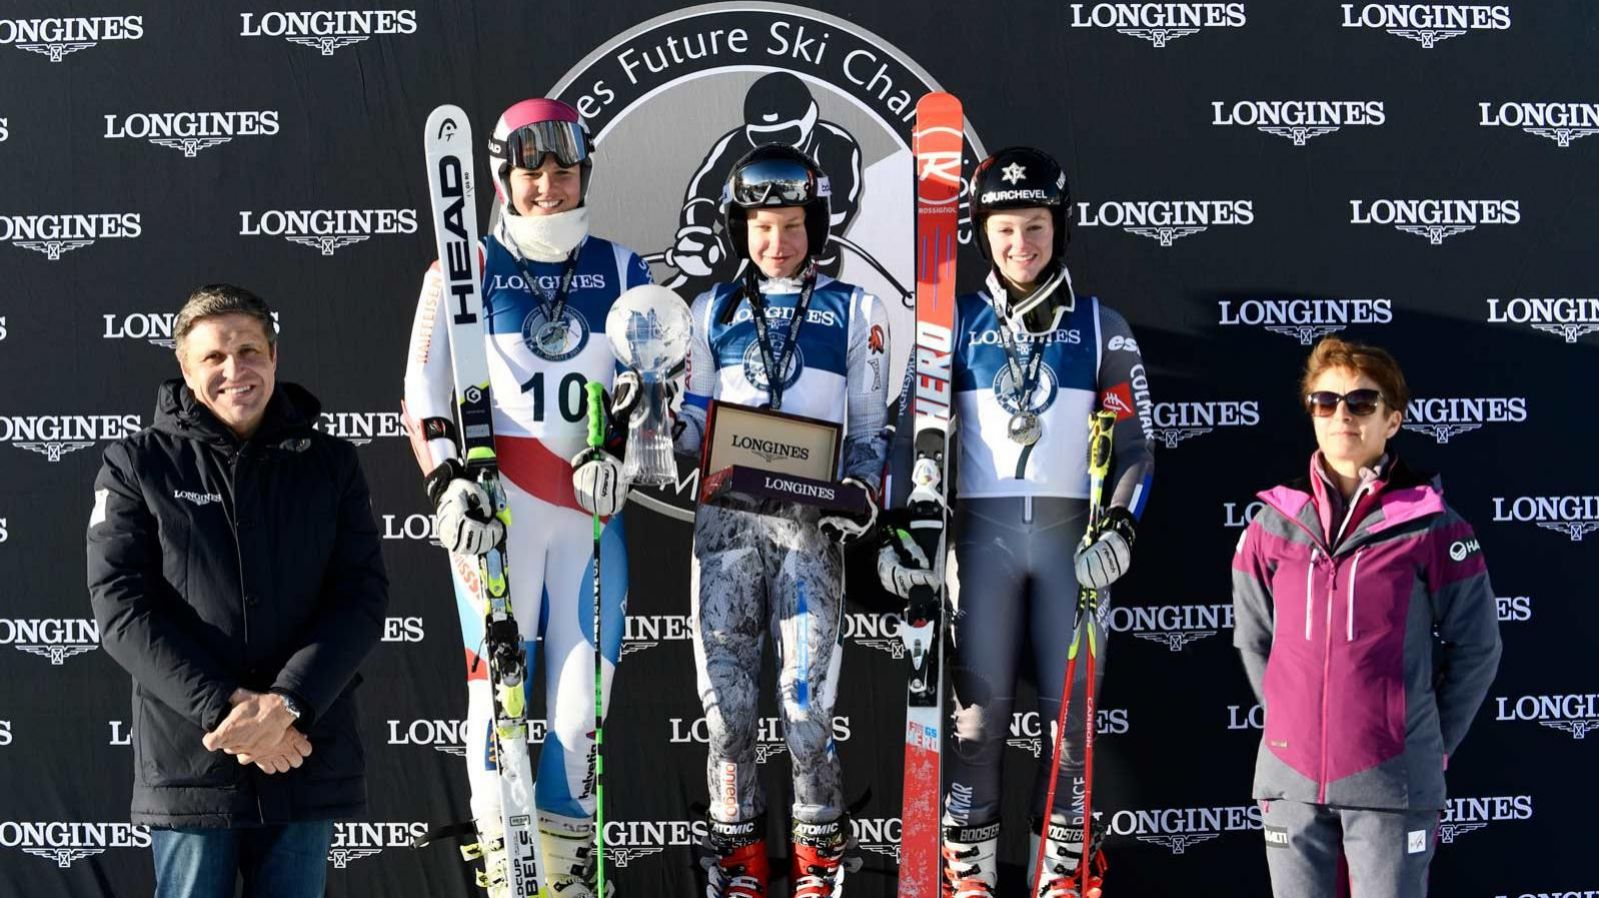 Longines Alpine Skiing Event: LONGINES FUTURE SKI CHAMPIONS - THE BEST YOUNG FEMALE SKIERS